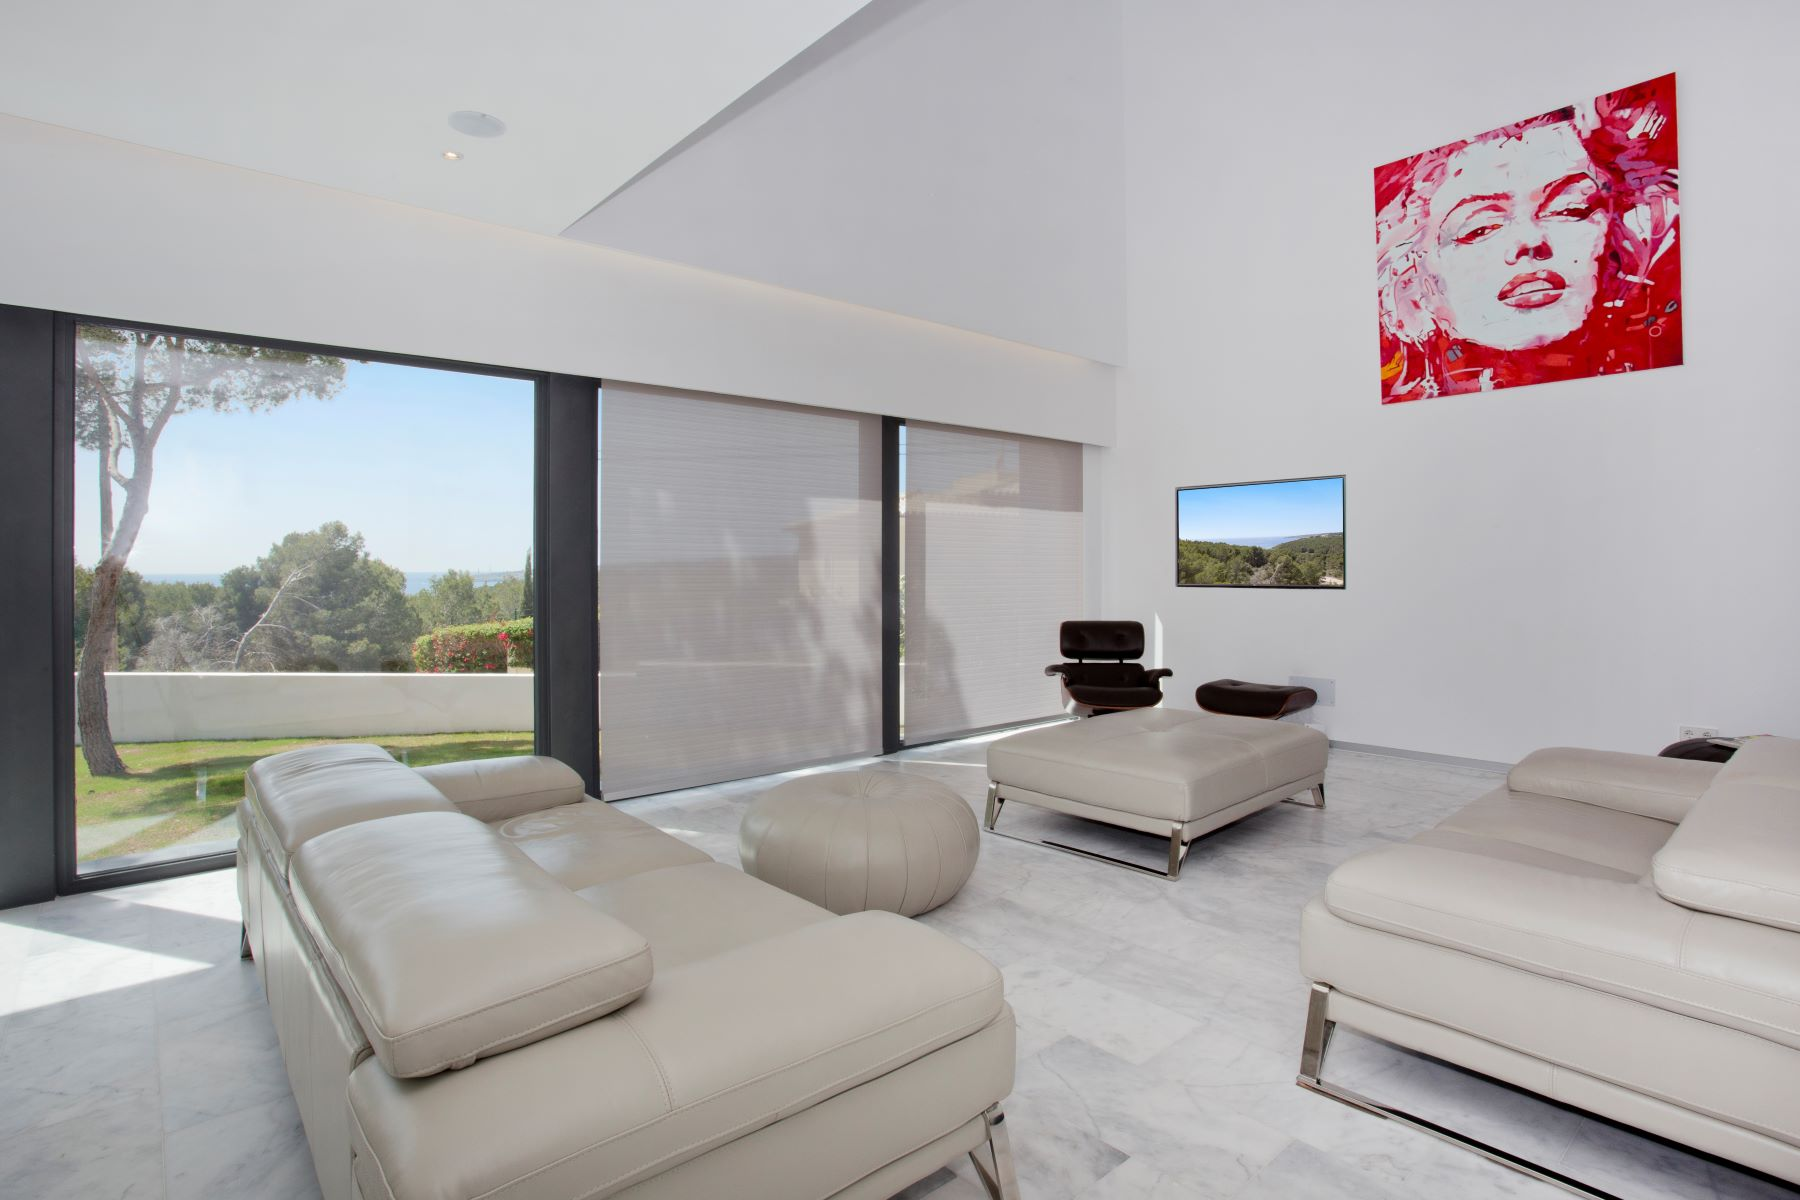 Additional photo for property listing at Villa with view in Sol de Mallorca  Calvia, Balearic Islands 07181 Spain